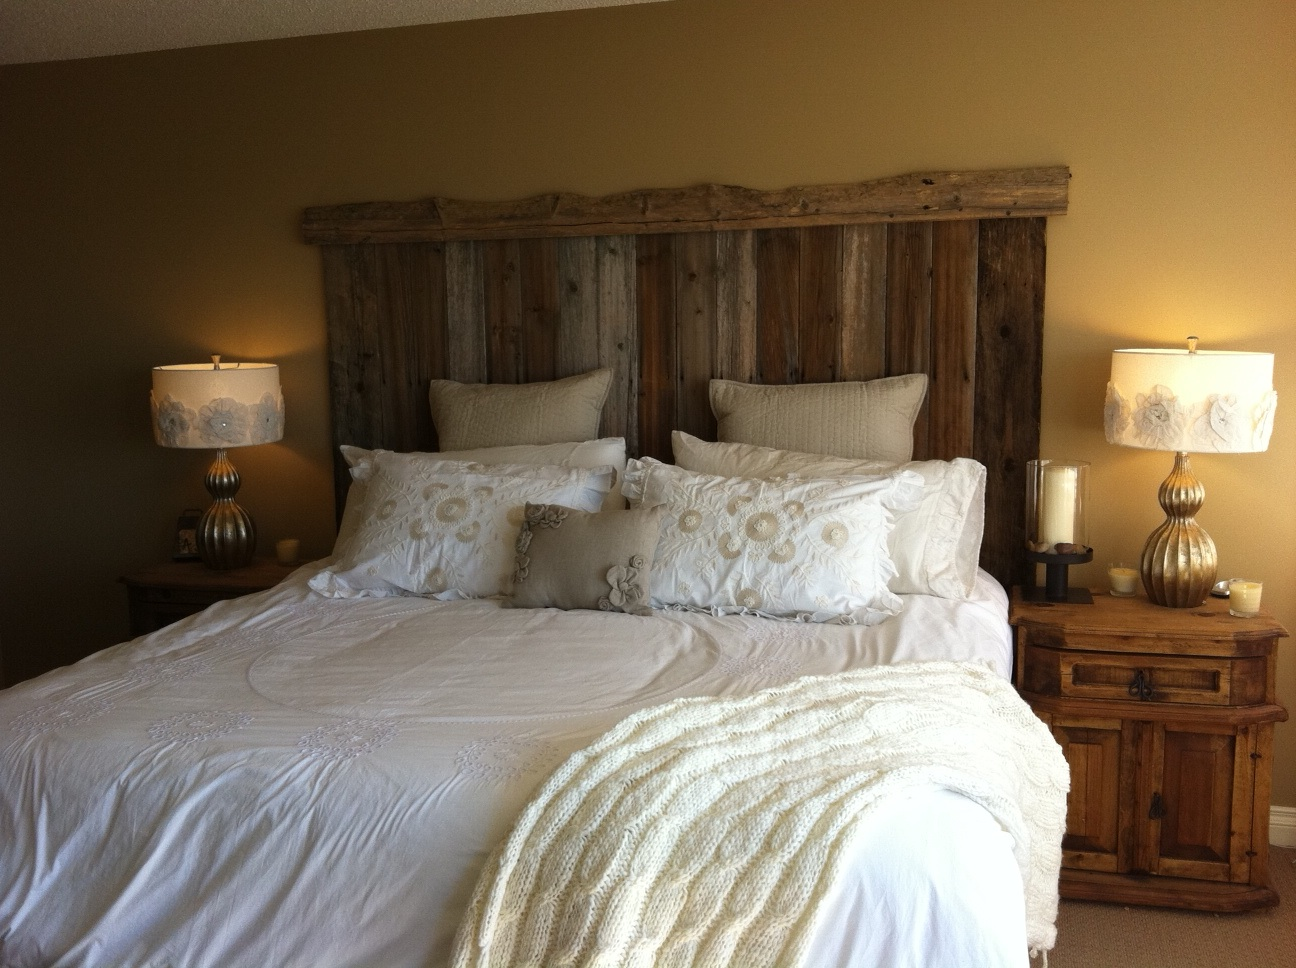 Creative Nightstand Ideas Barn Board Headboard Twobertis